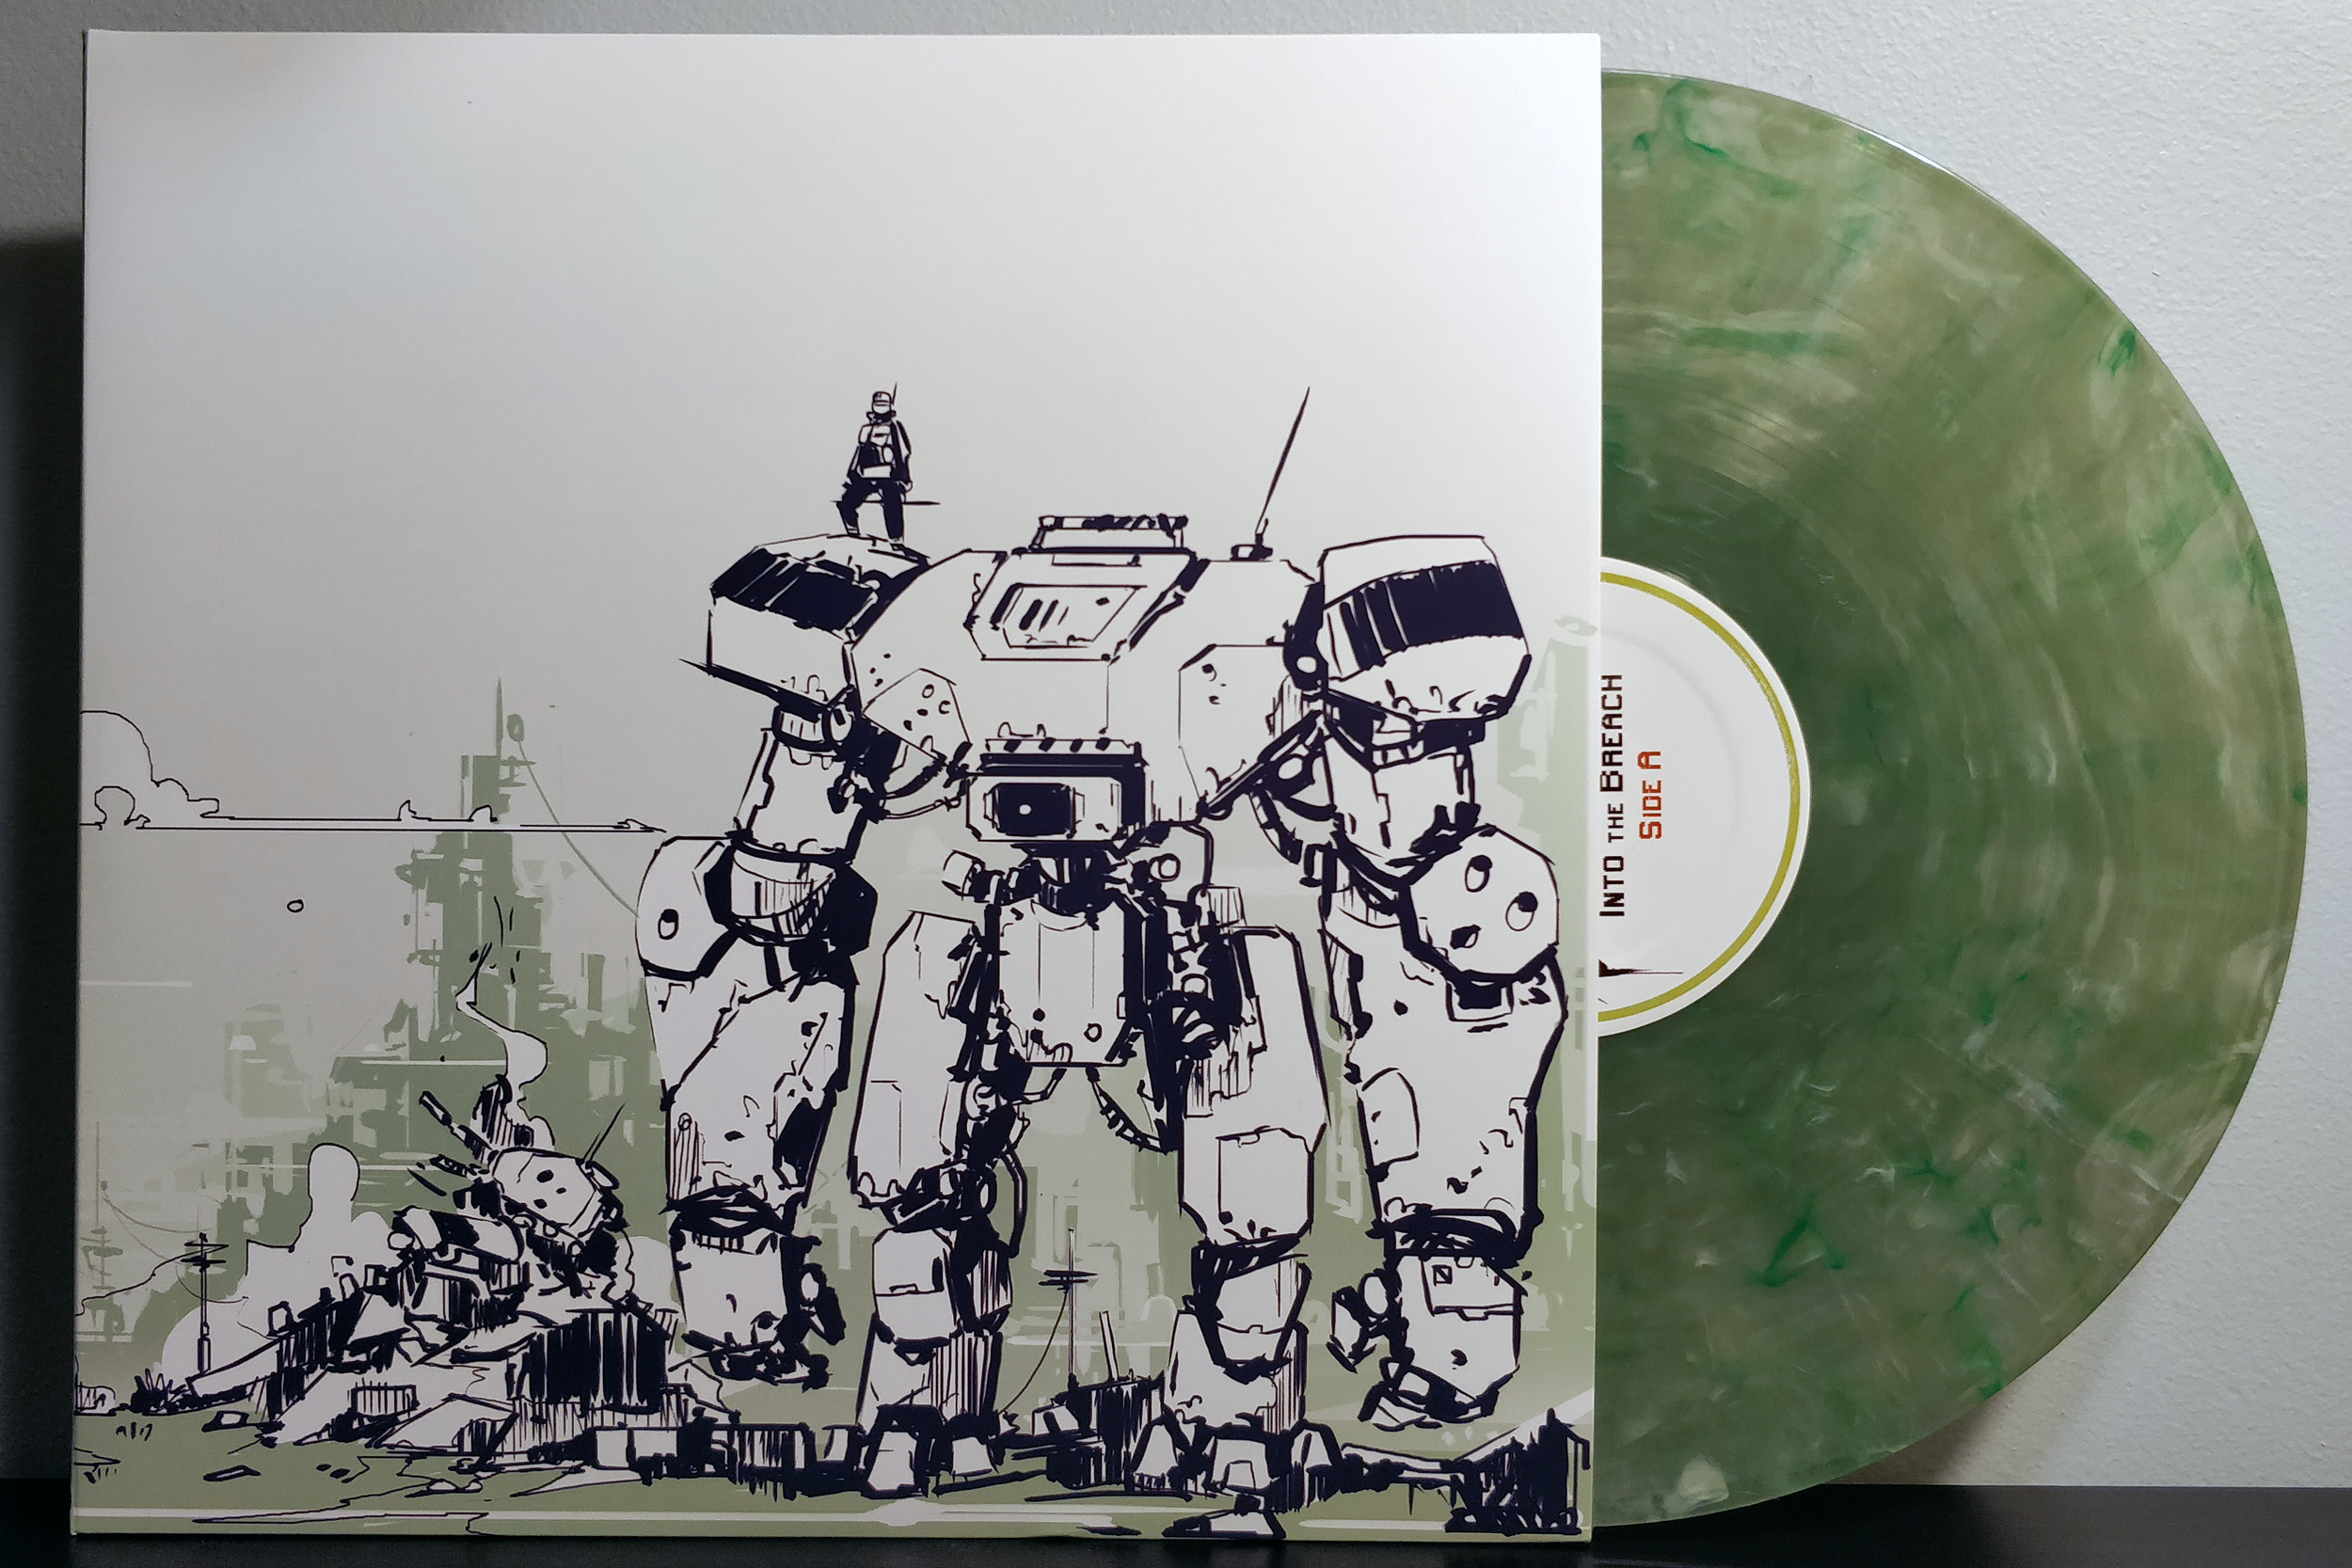 Into the Breach by Ben Prunty pressed on translucent, smoky green vinyl by Fangamer